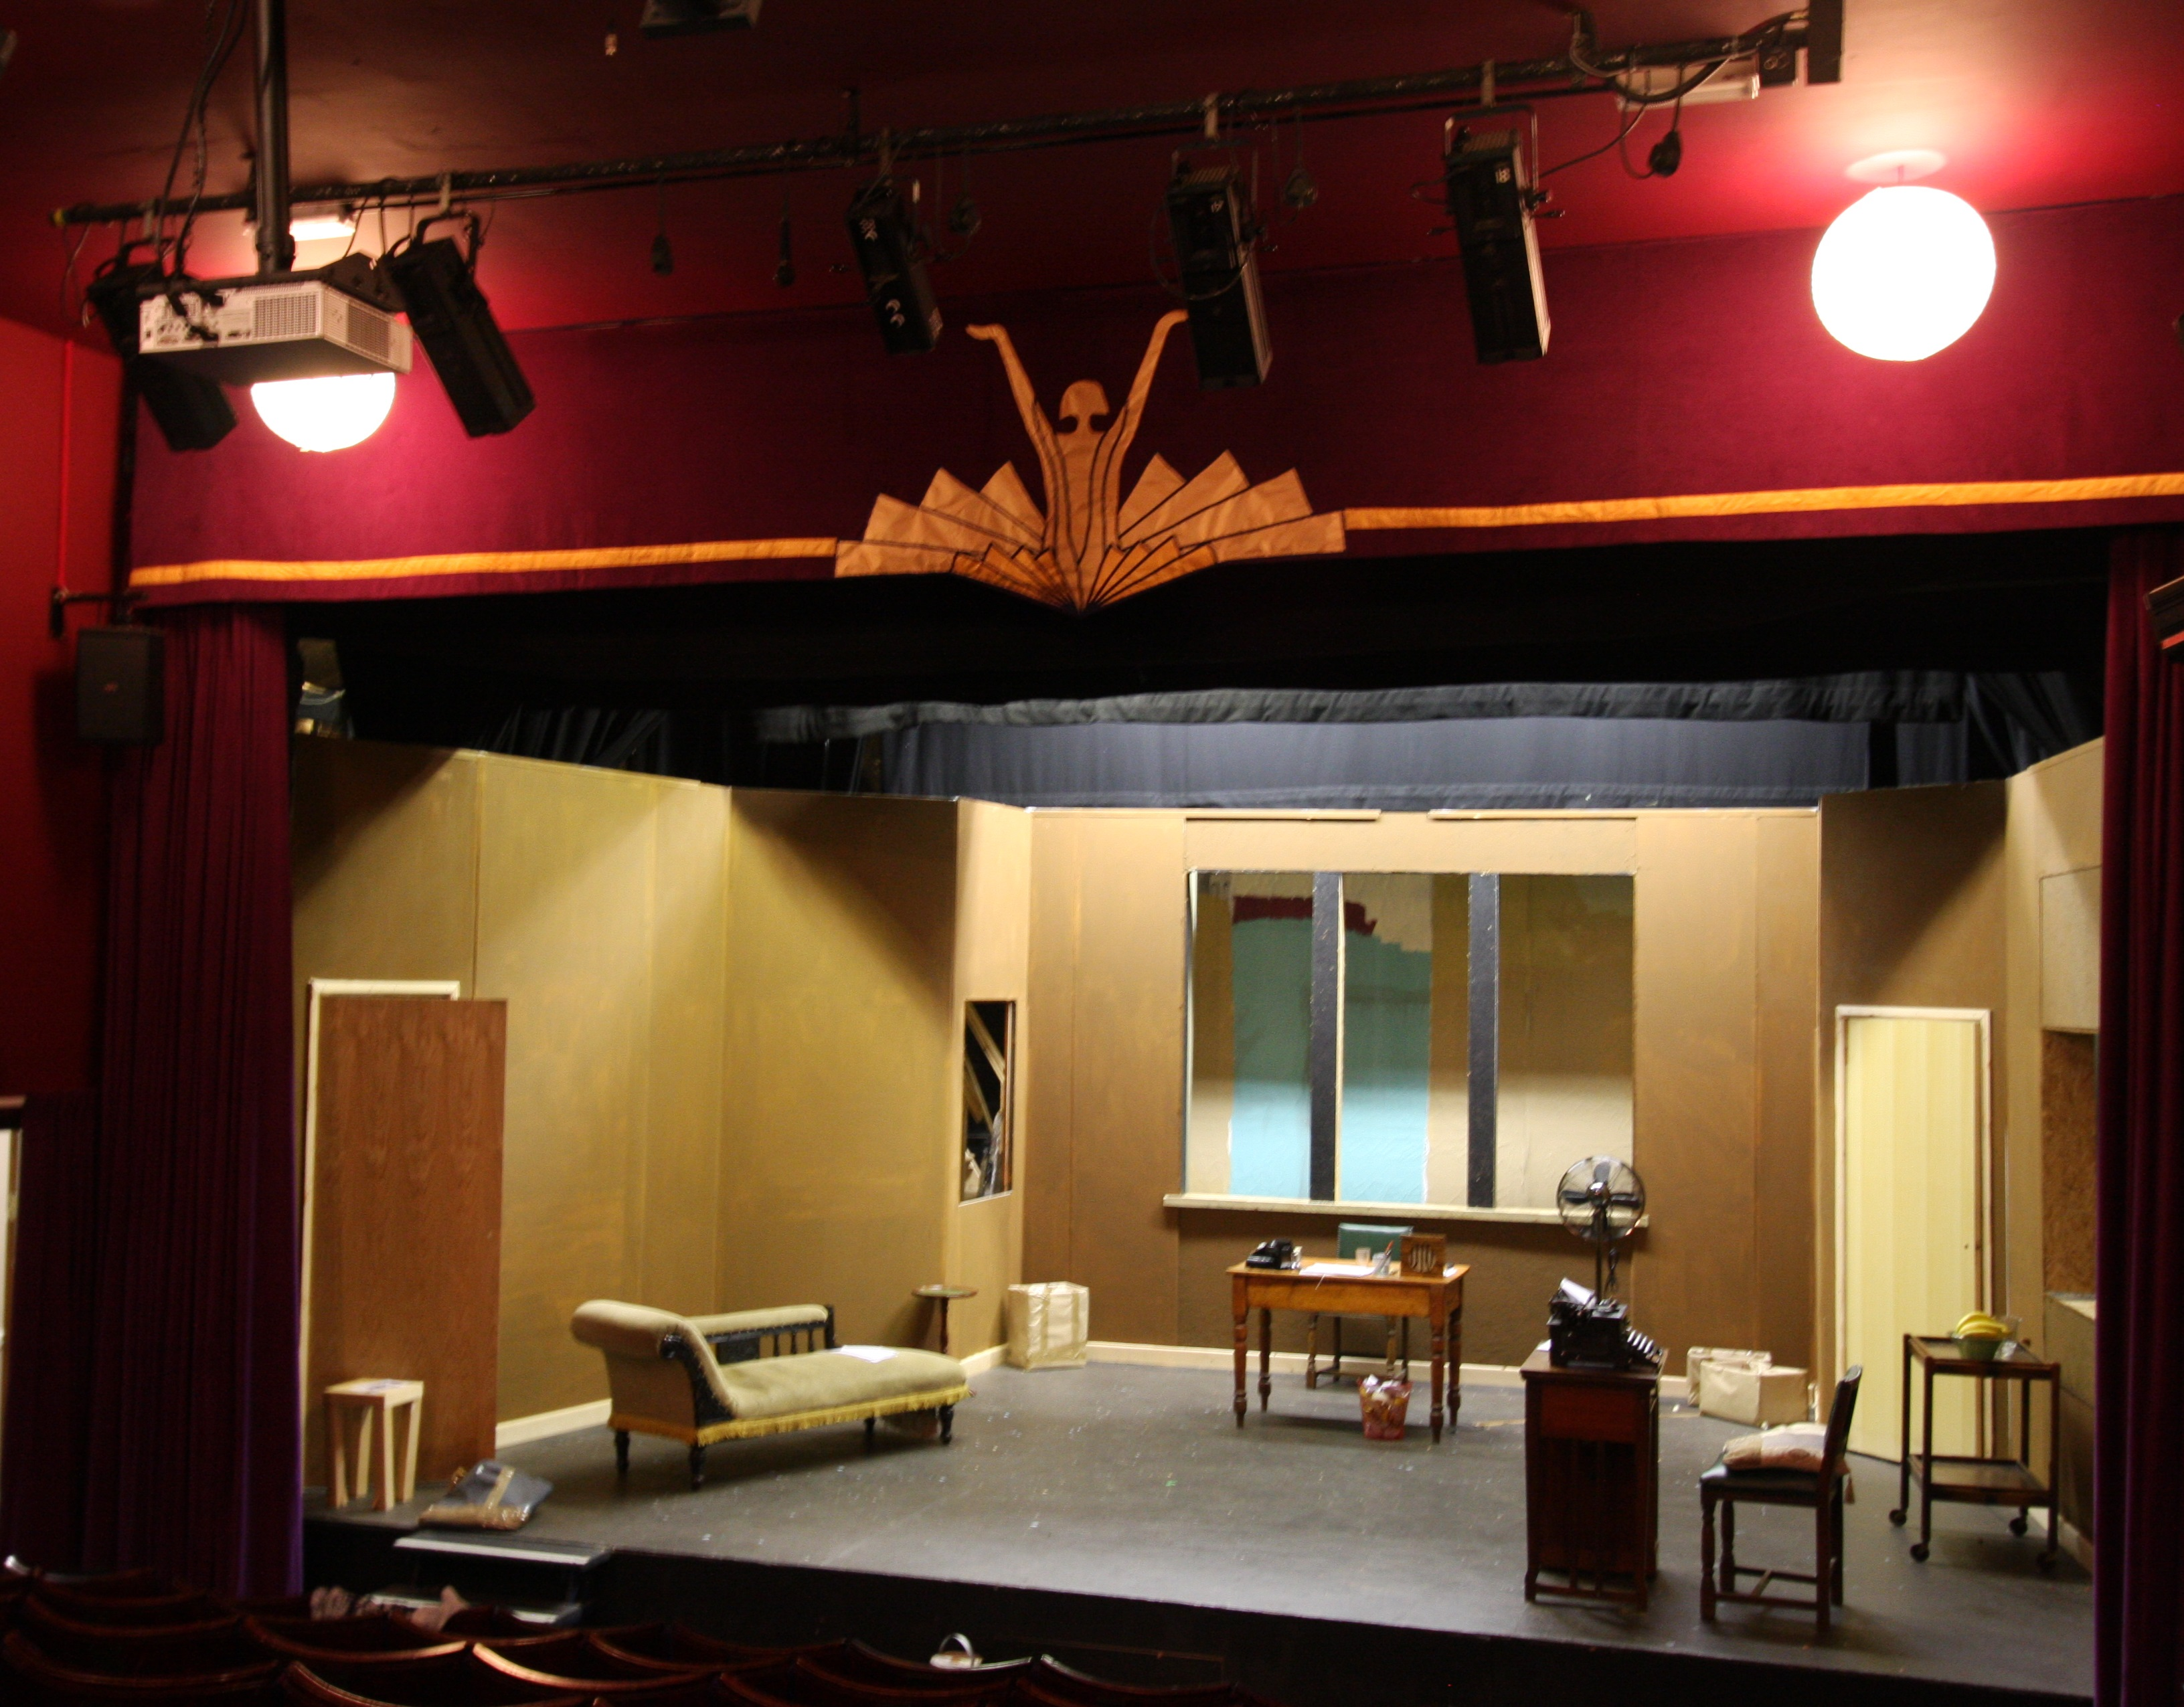 Manufacturer of flame retardant fabrics, drapery and stage engineering solutions, J&C Joel, has helped set the stage at Hebden Bridge Little Theatre.